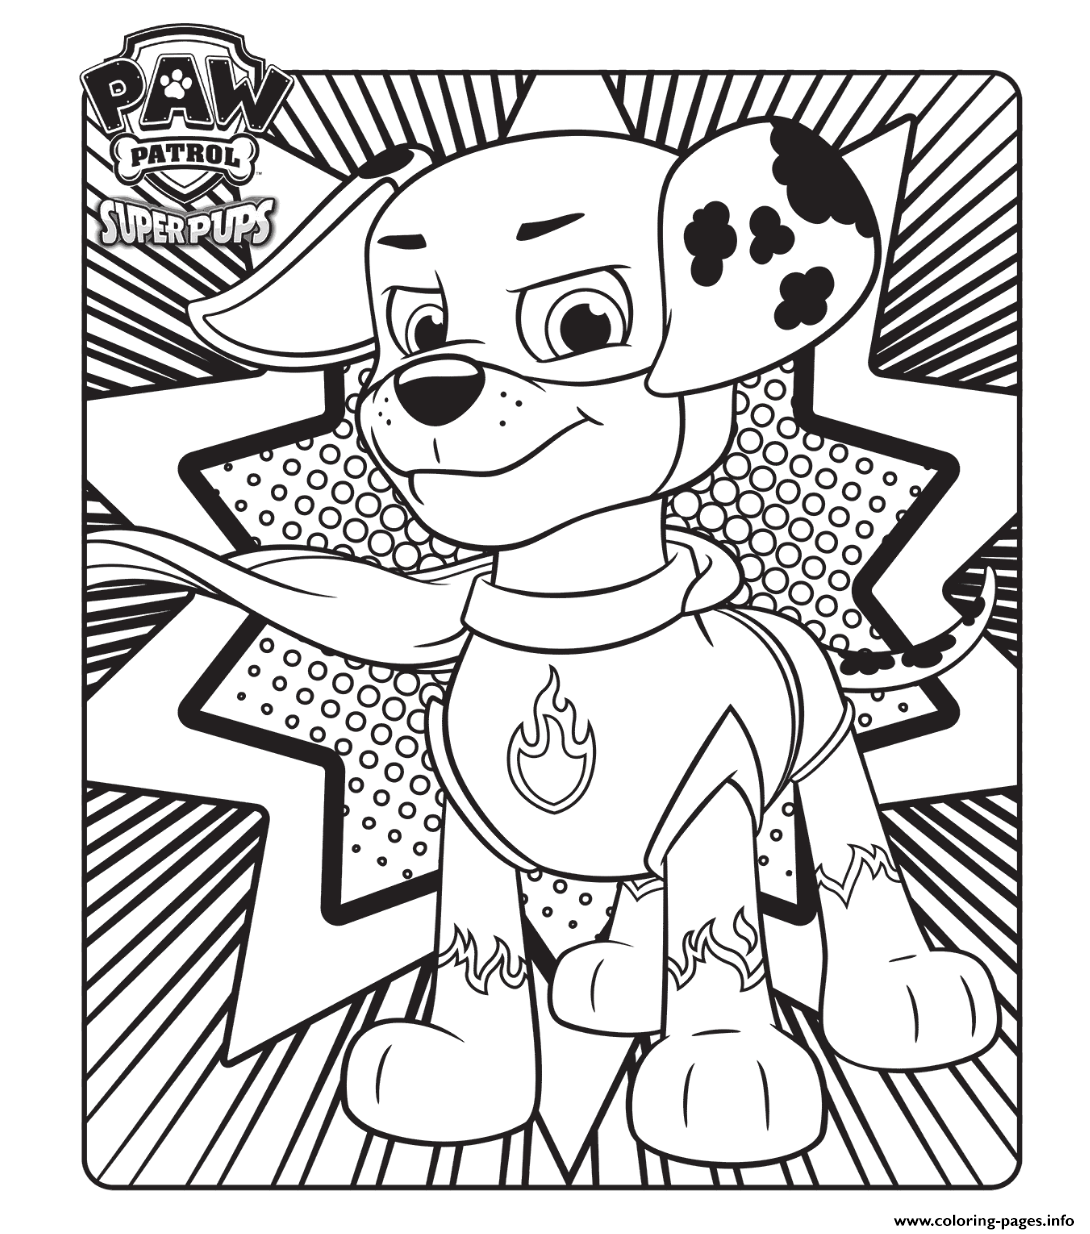 Download Coloring Pages Paw Patrol Super Pups Download Coloring Pages Printable